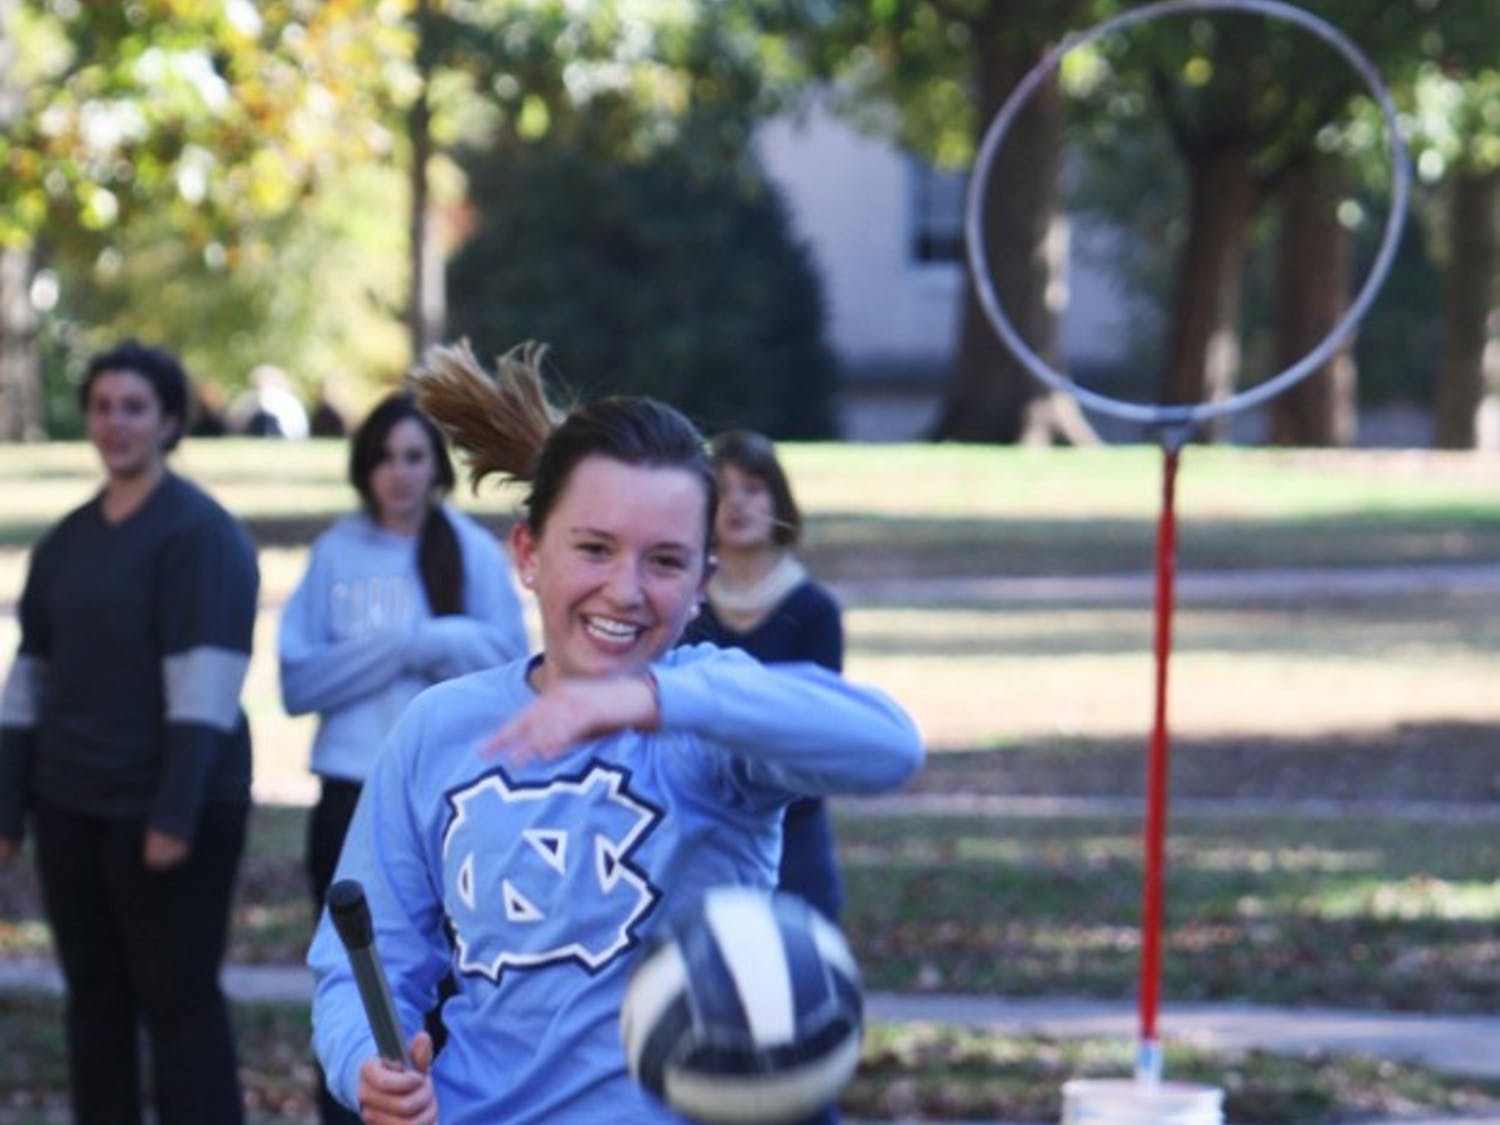 Archaeology and economics double major Sam Kiefer plays Quidditch with the UNC Quidditch team on Polk Place earlier this month.